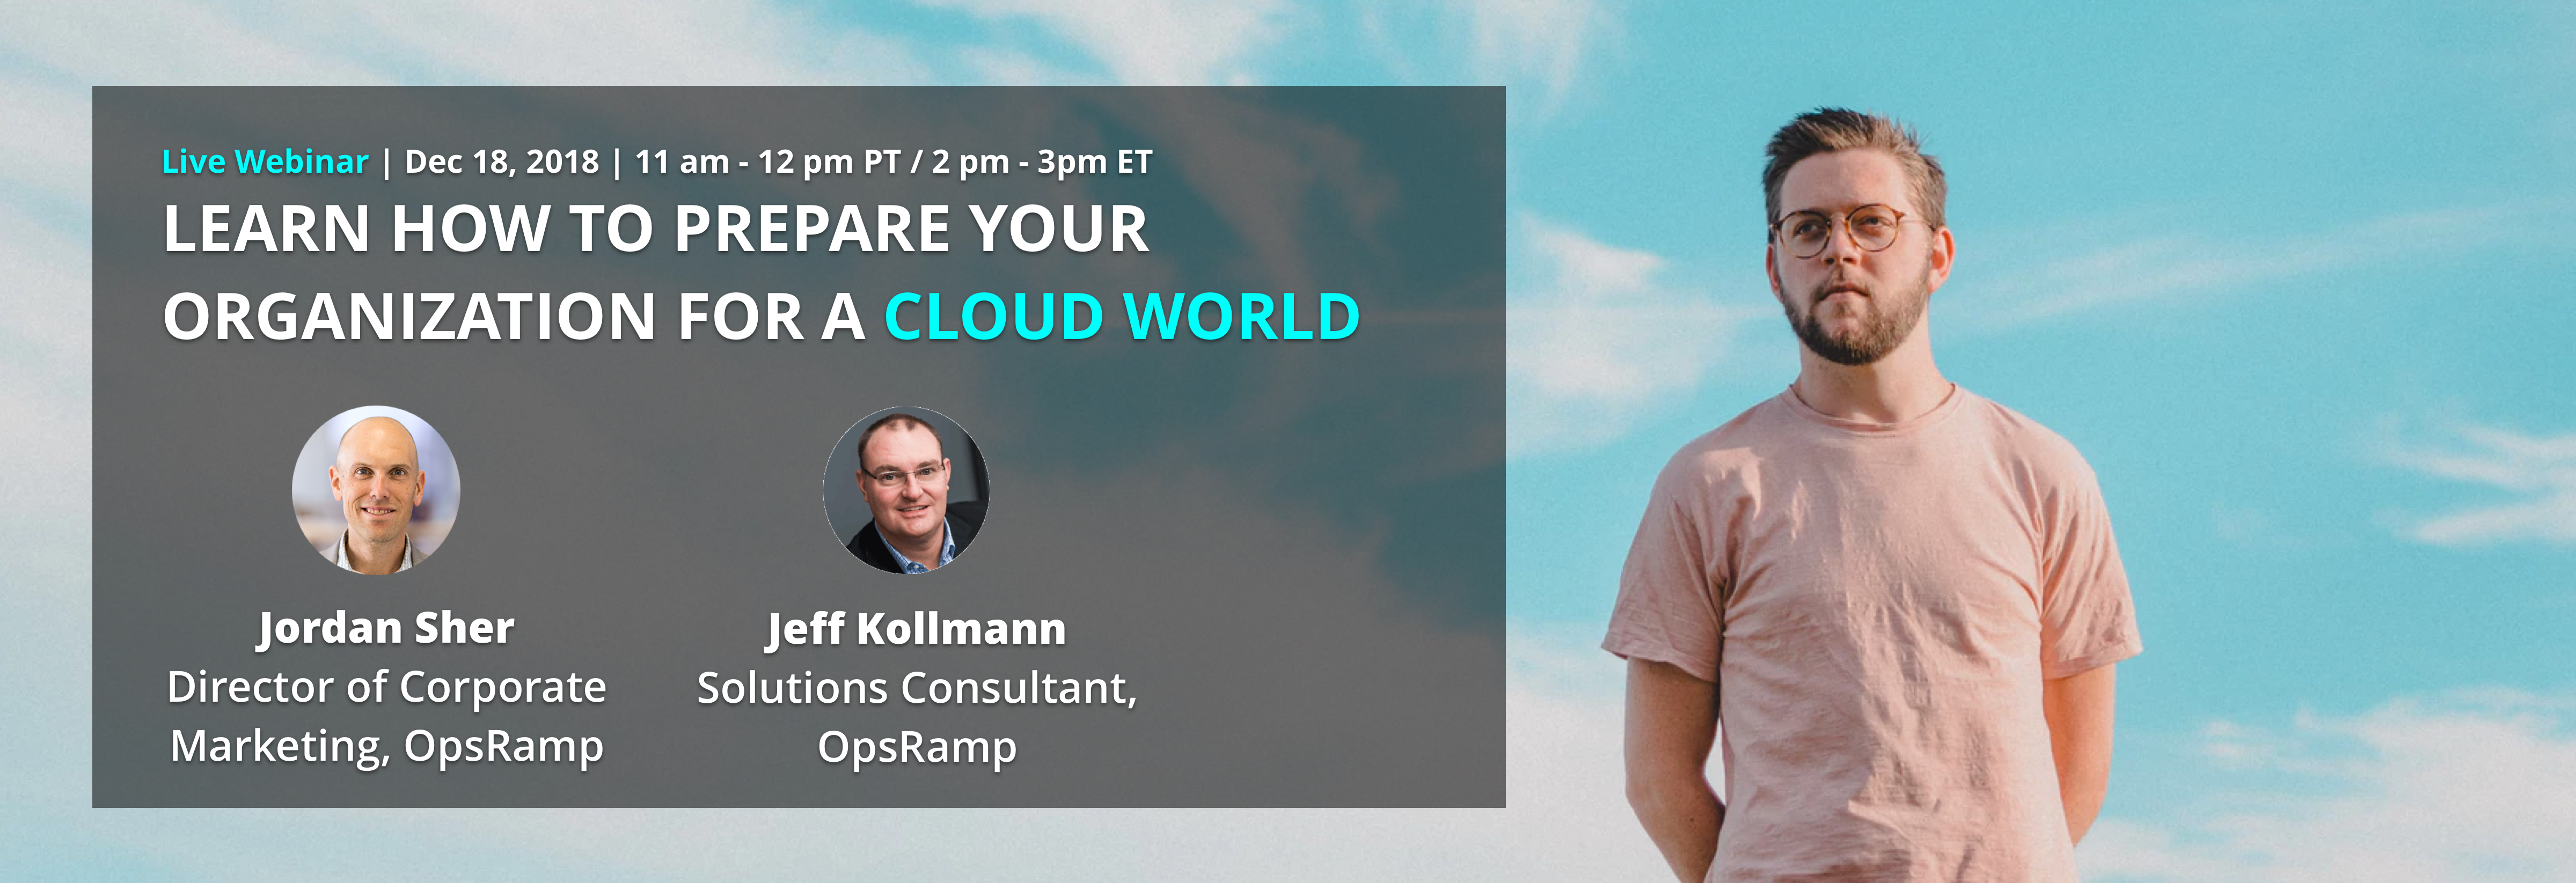 [Webinar] Learn How to Prepare Your Organization for a Cloud World